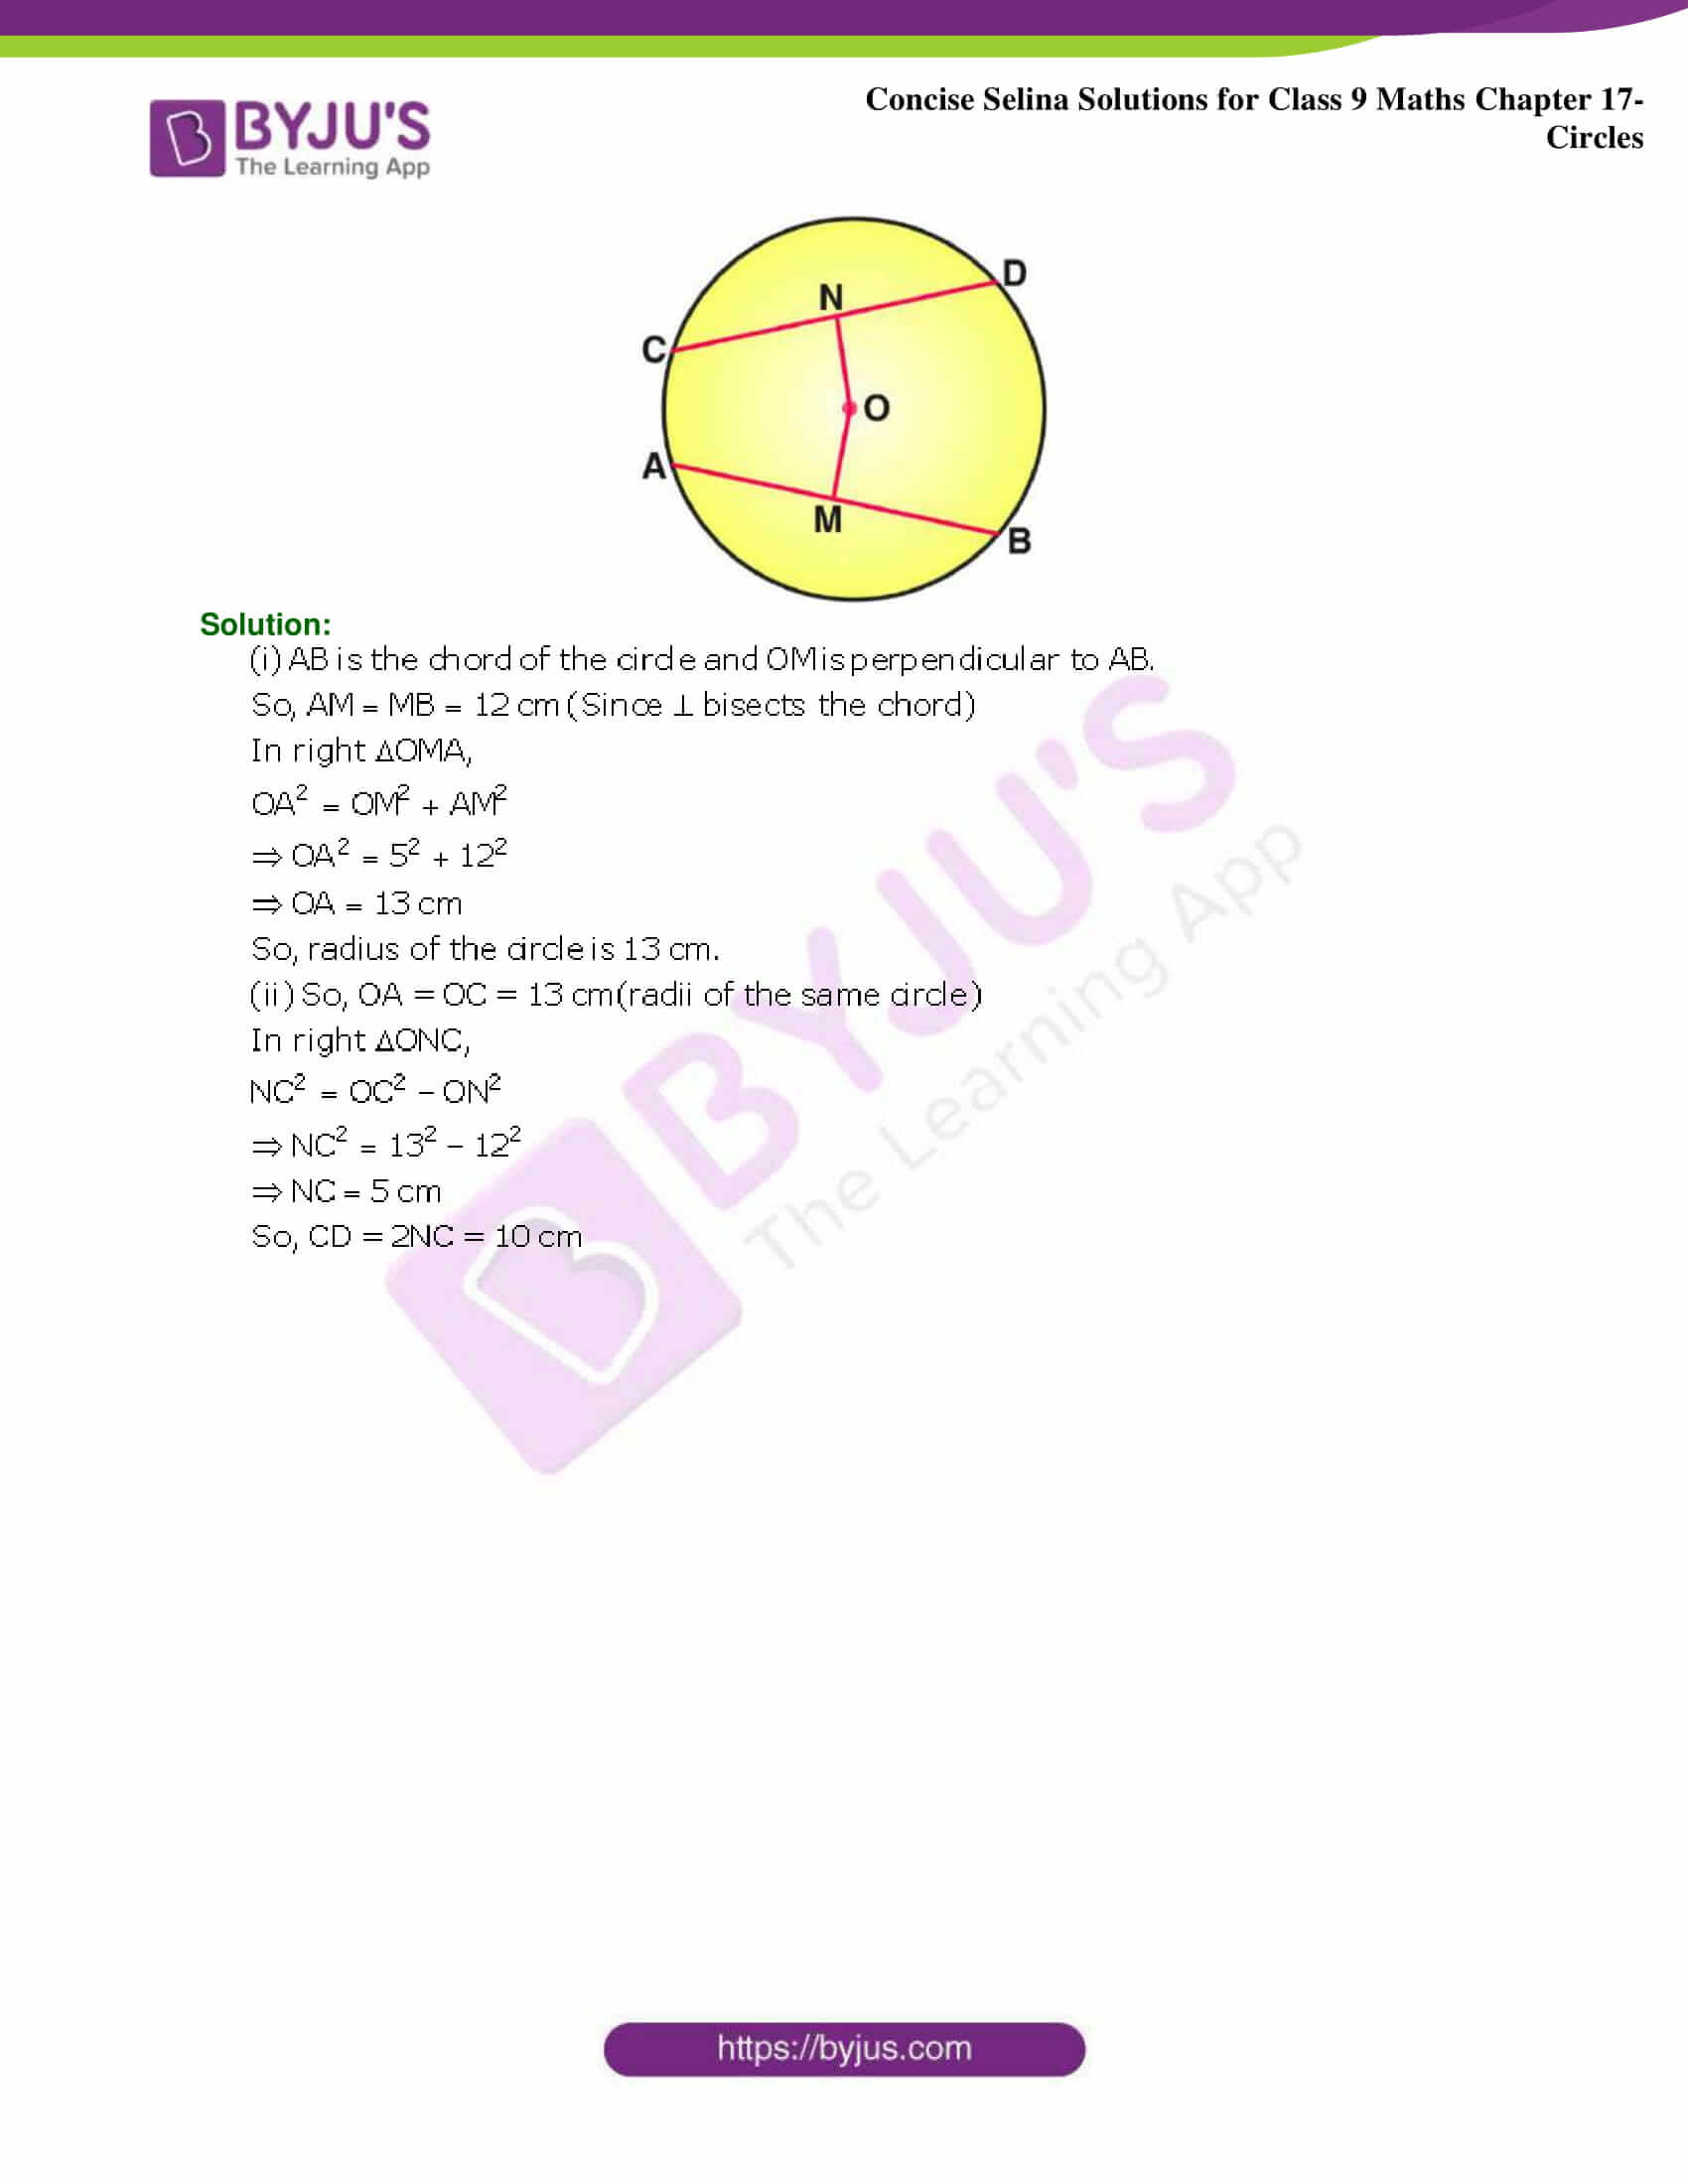 Concise Selina Solutions Class 9 Maths Chapter 17 Circles part 08